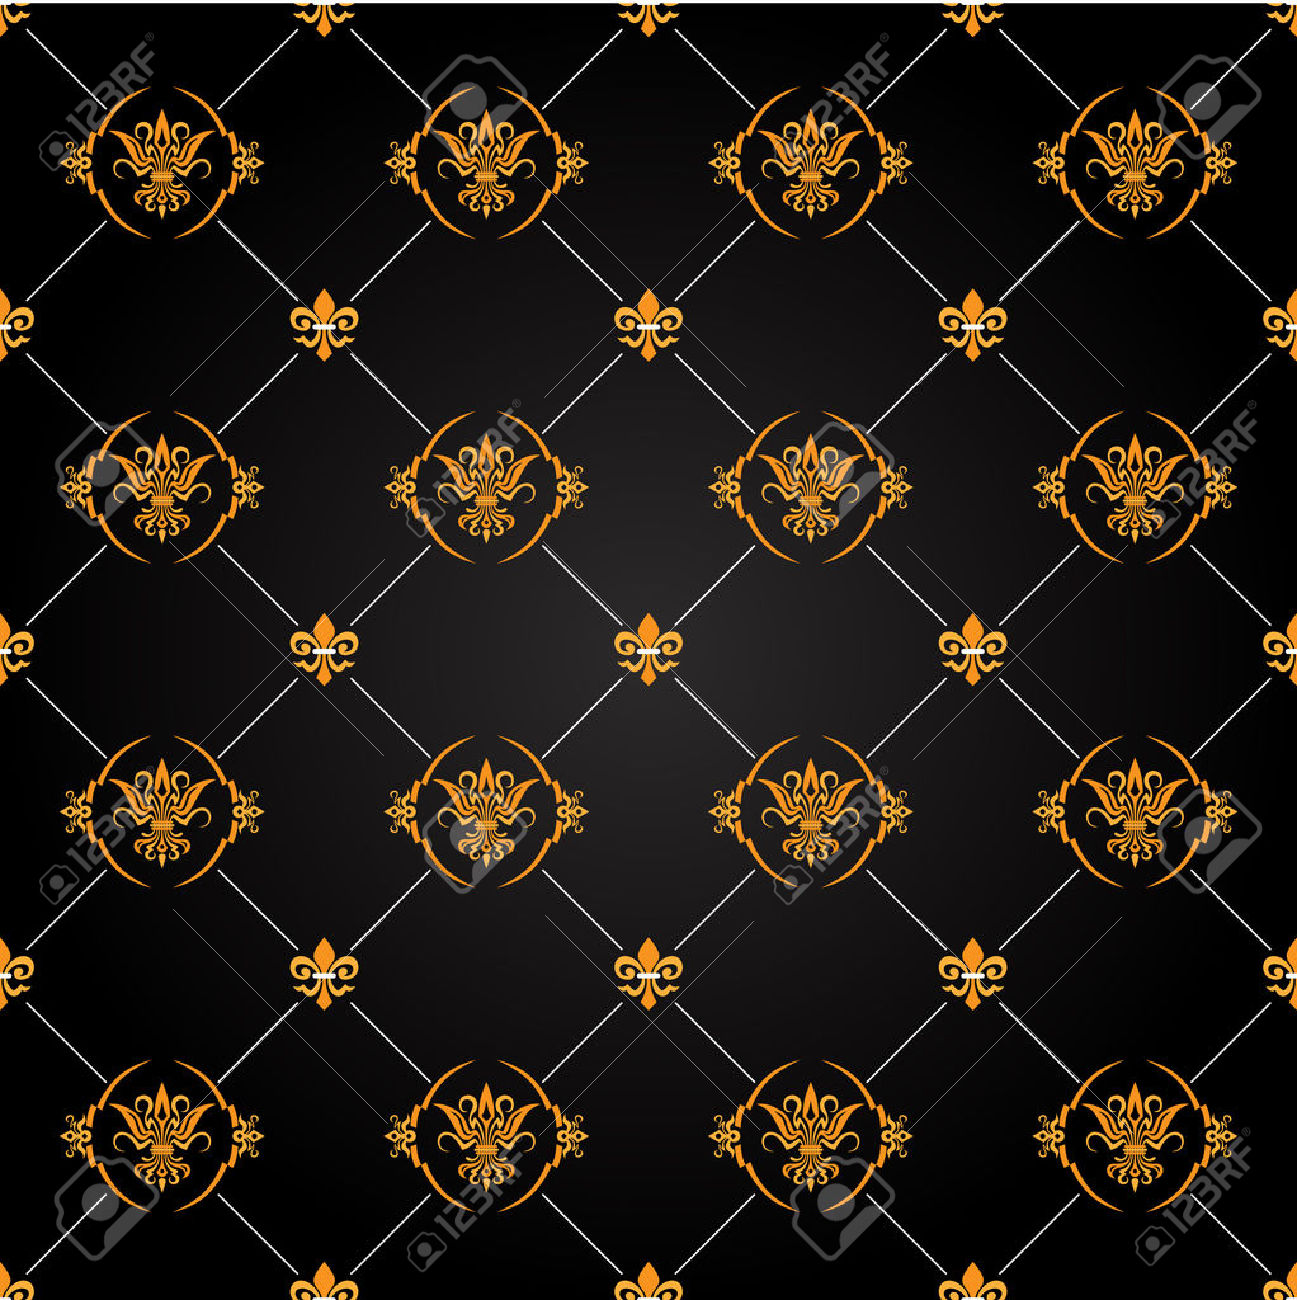 Gold Glitter Backgrounds Images PSD and Vectors Graphic